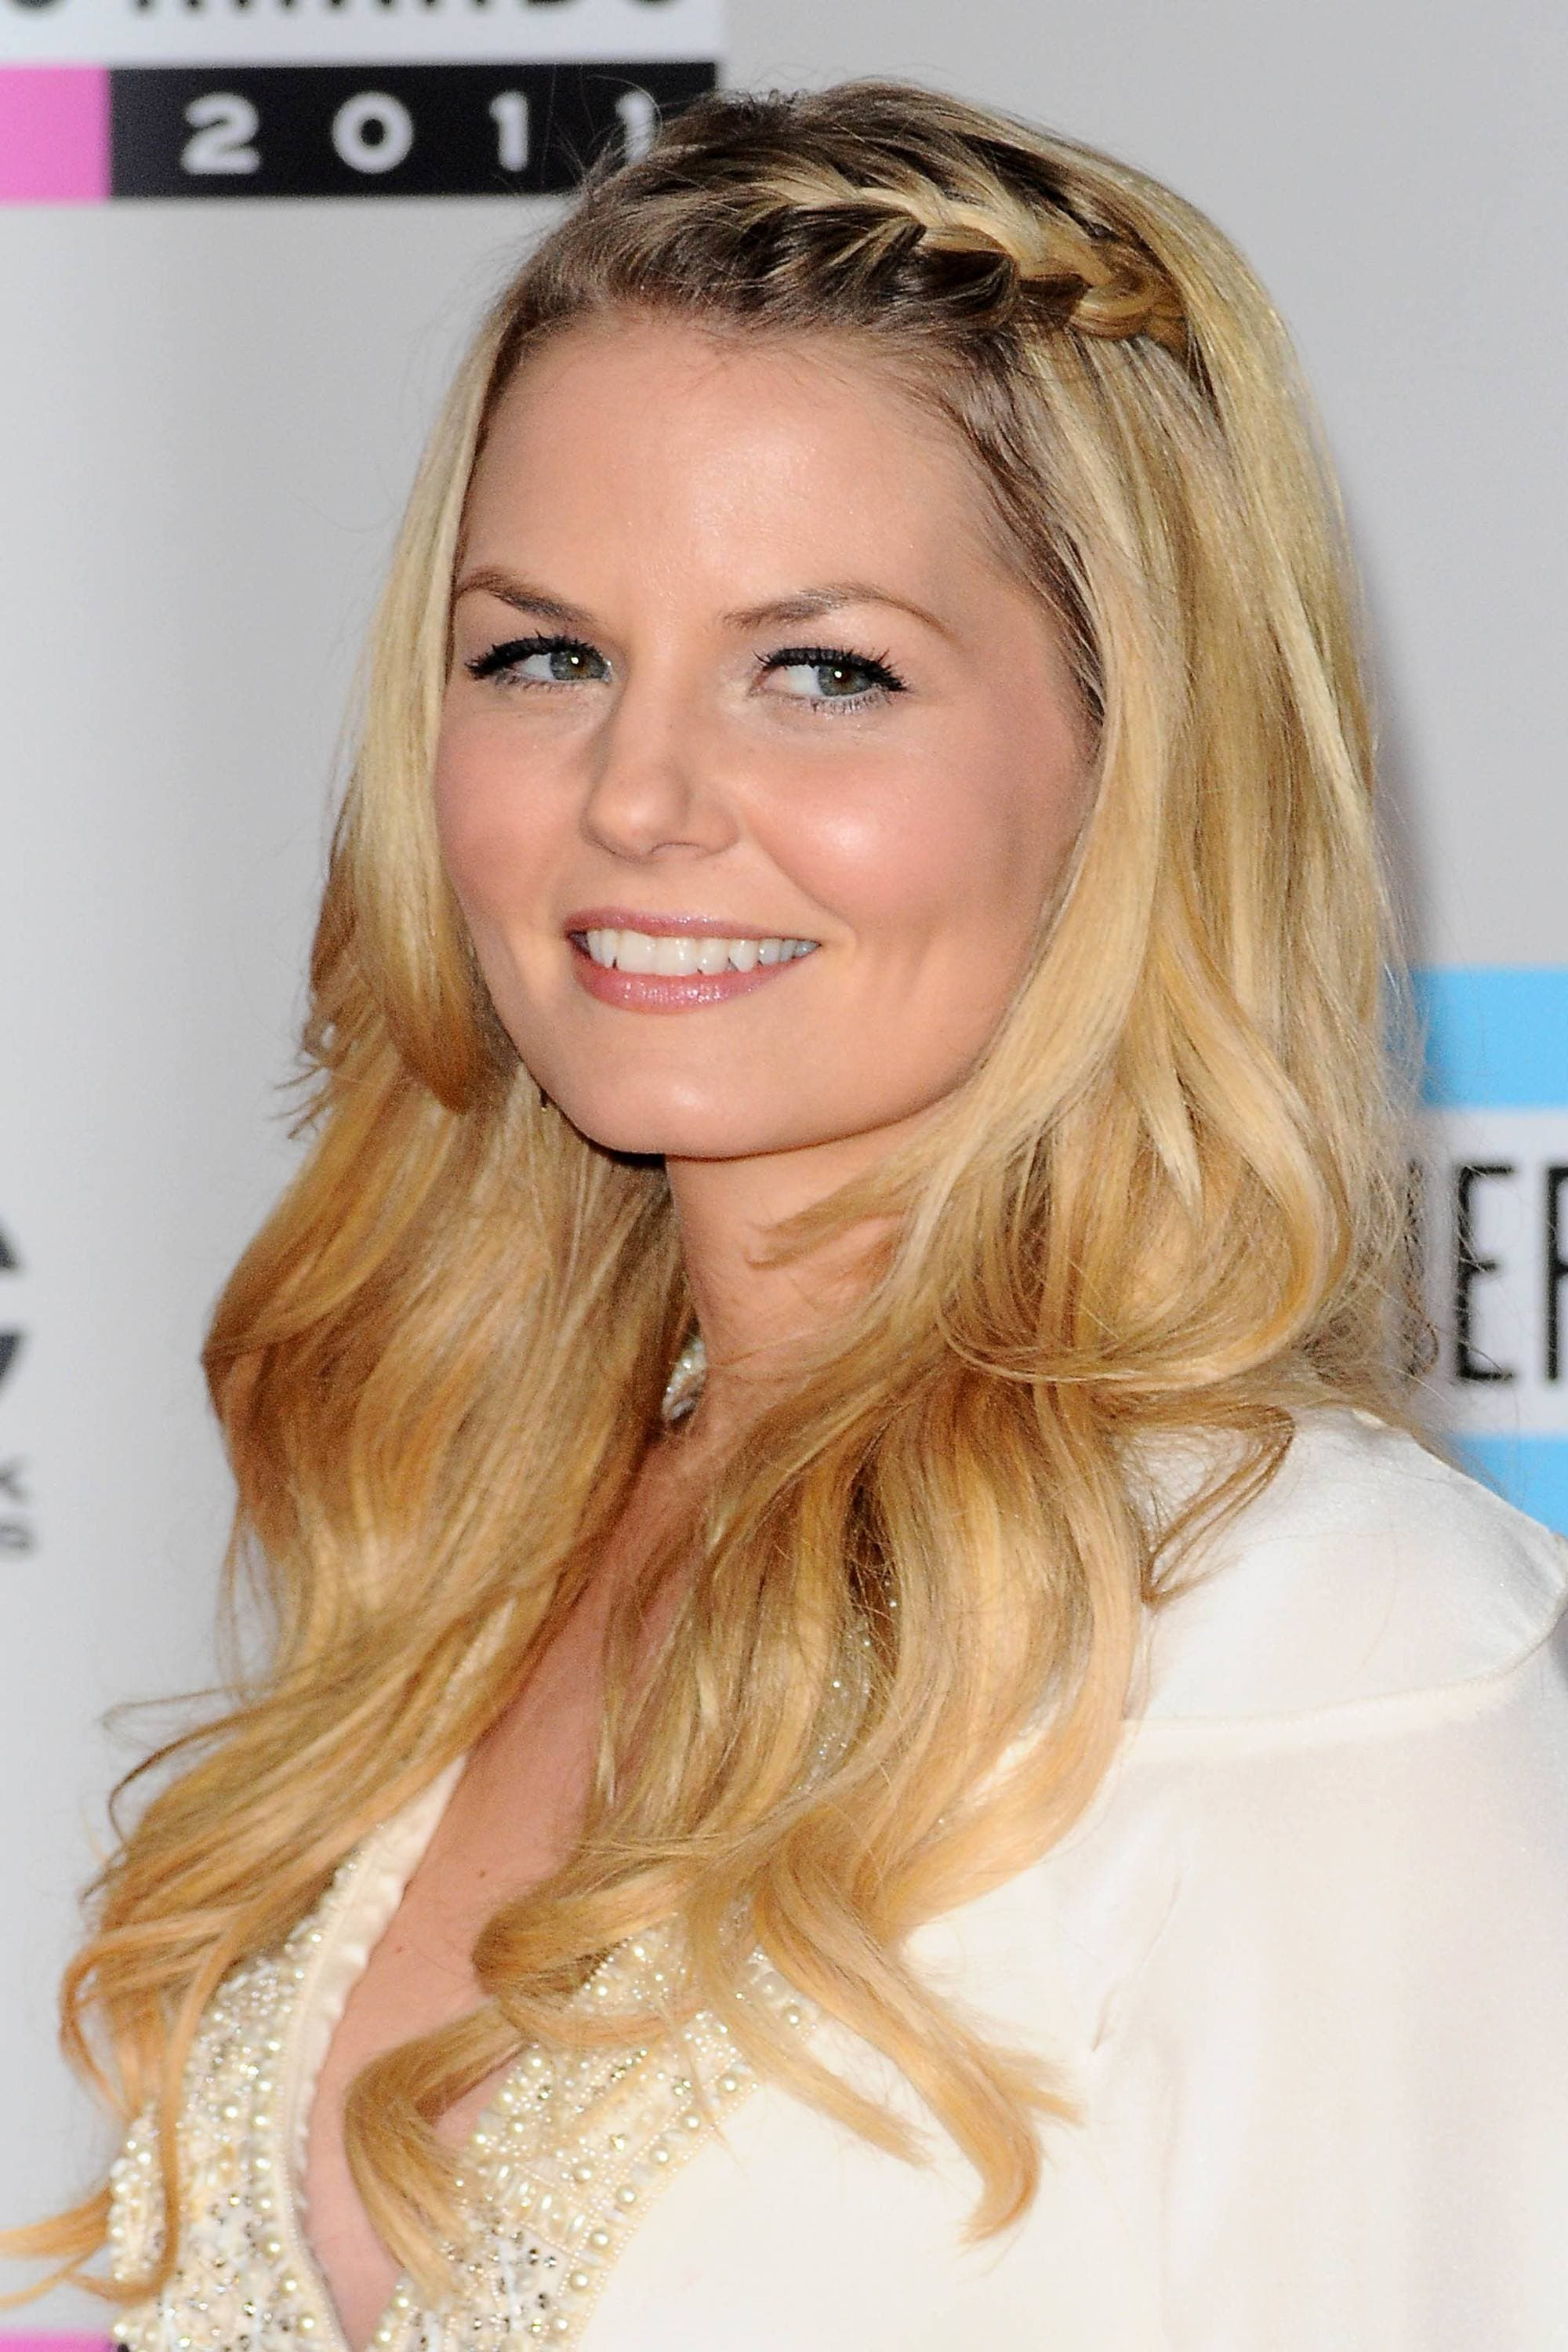 easy braided hairstyles for long hair: Jennifer Morrison with braided fringe hairstyle and long waves